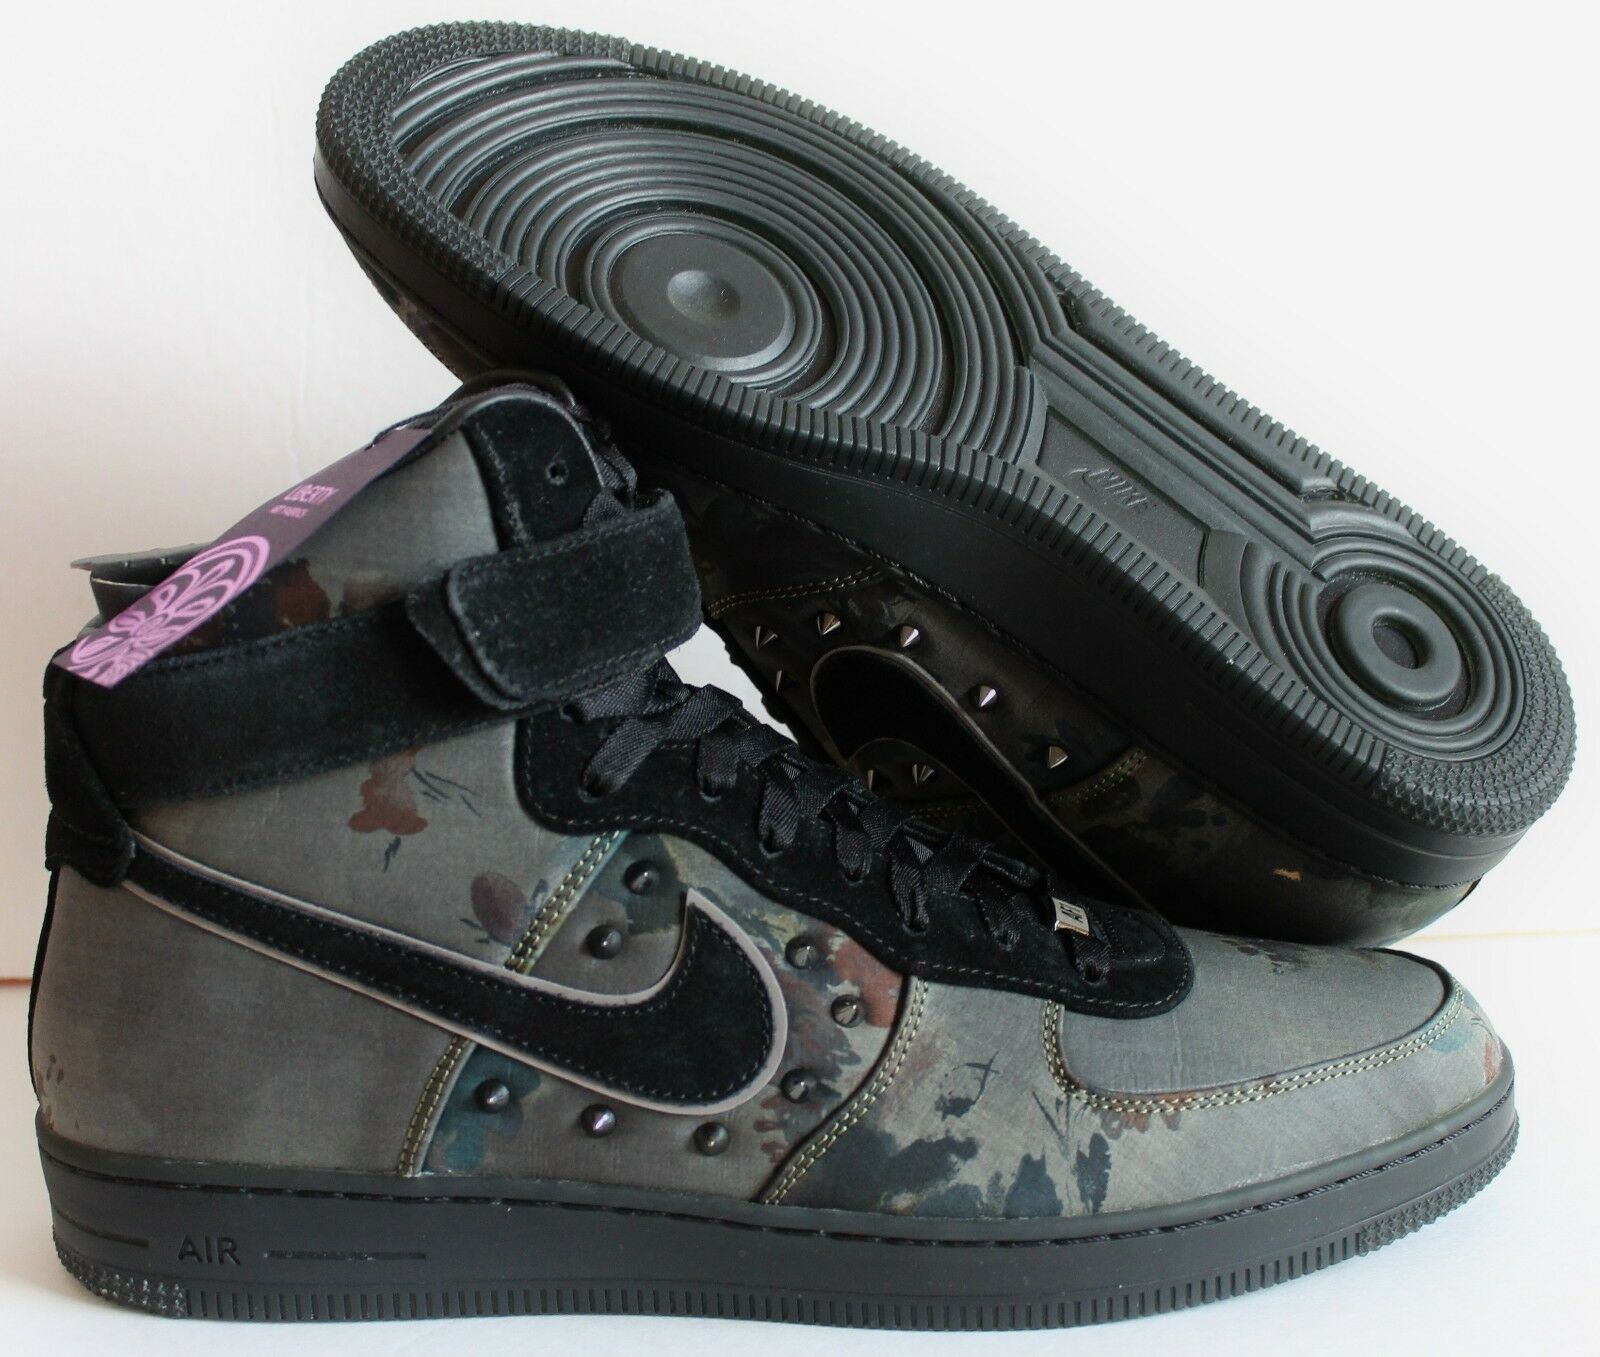 NIKE AIR FORCE 1 AF1 DOWNTOWN NRG BLACK LIBERTY OF LONDON SZ 14